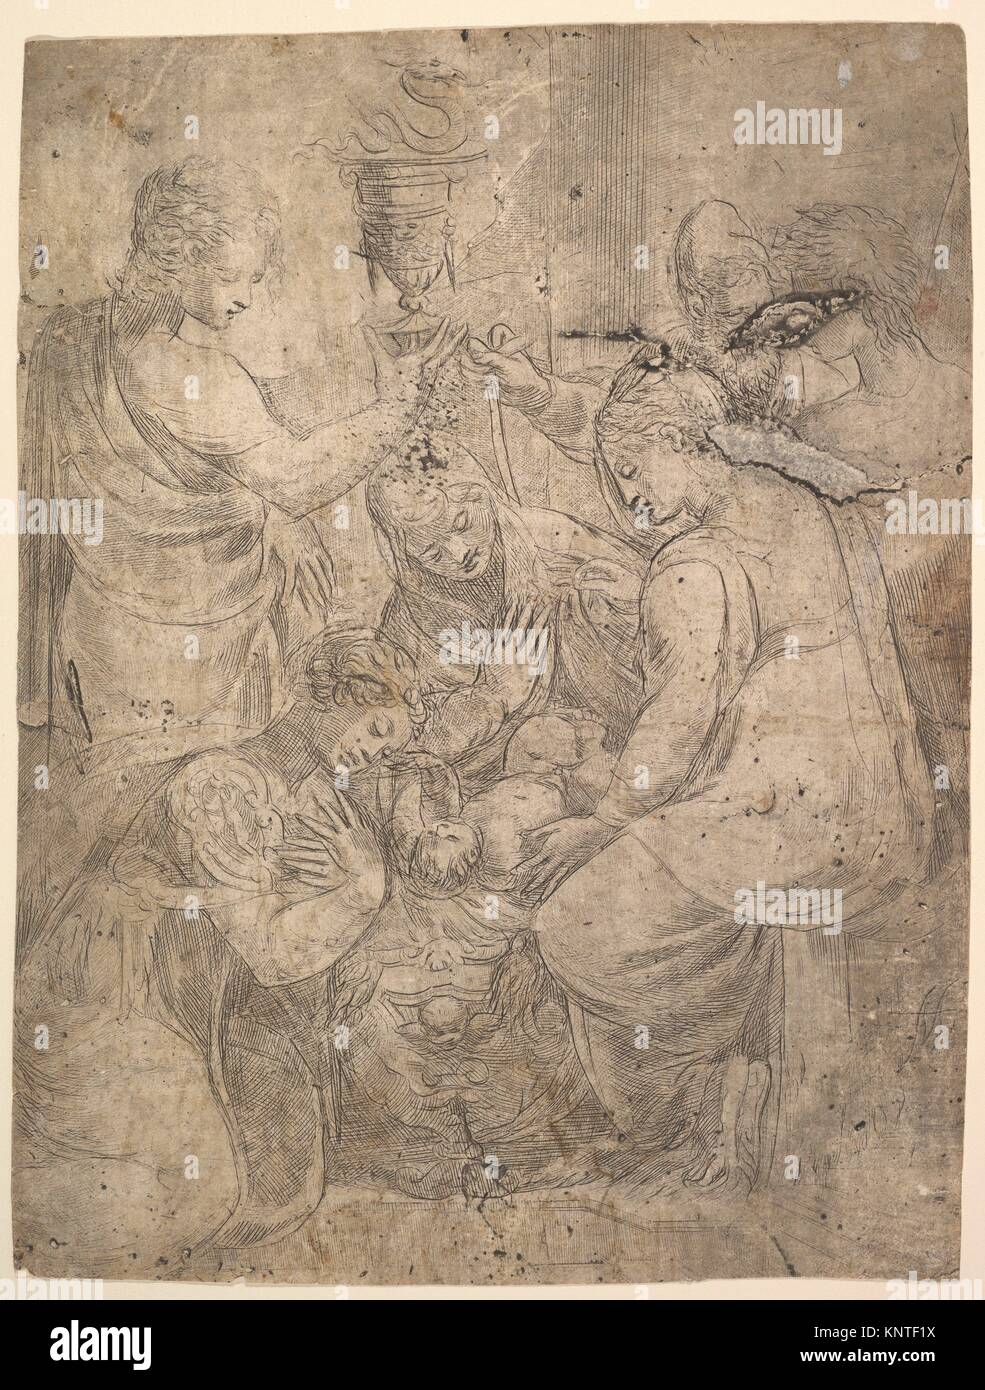 The Christ Child in the Cradle surrounded by adoring figures. Artist: Andrea Schiavone (Andrea Meldola) (Italian, - Stock Image